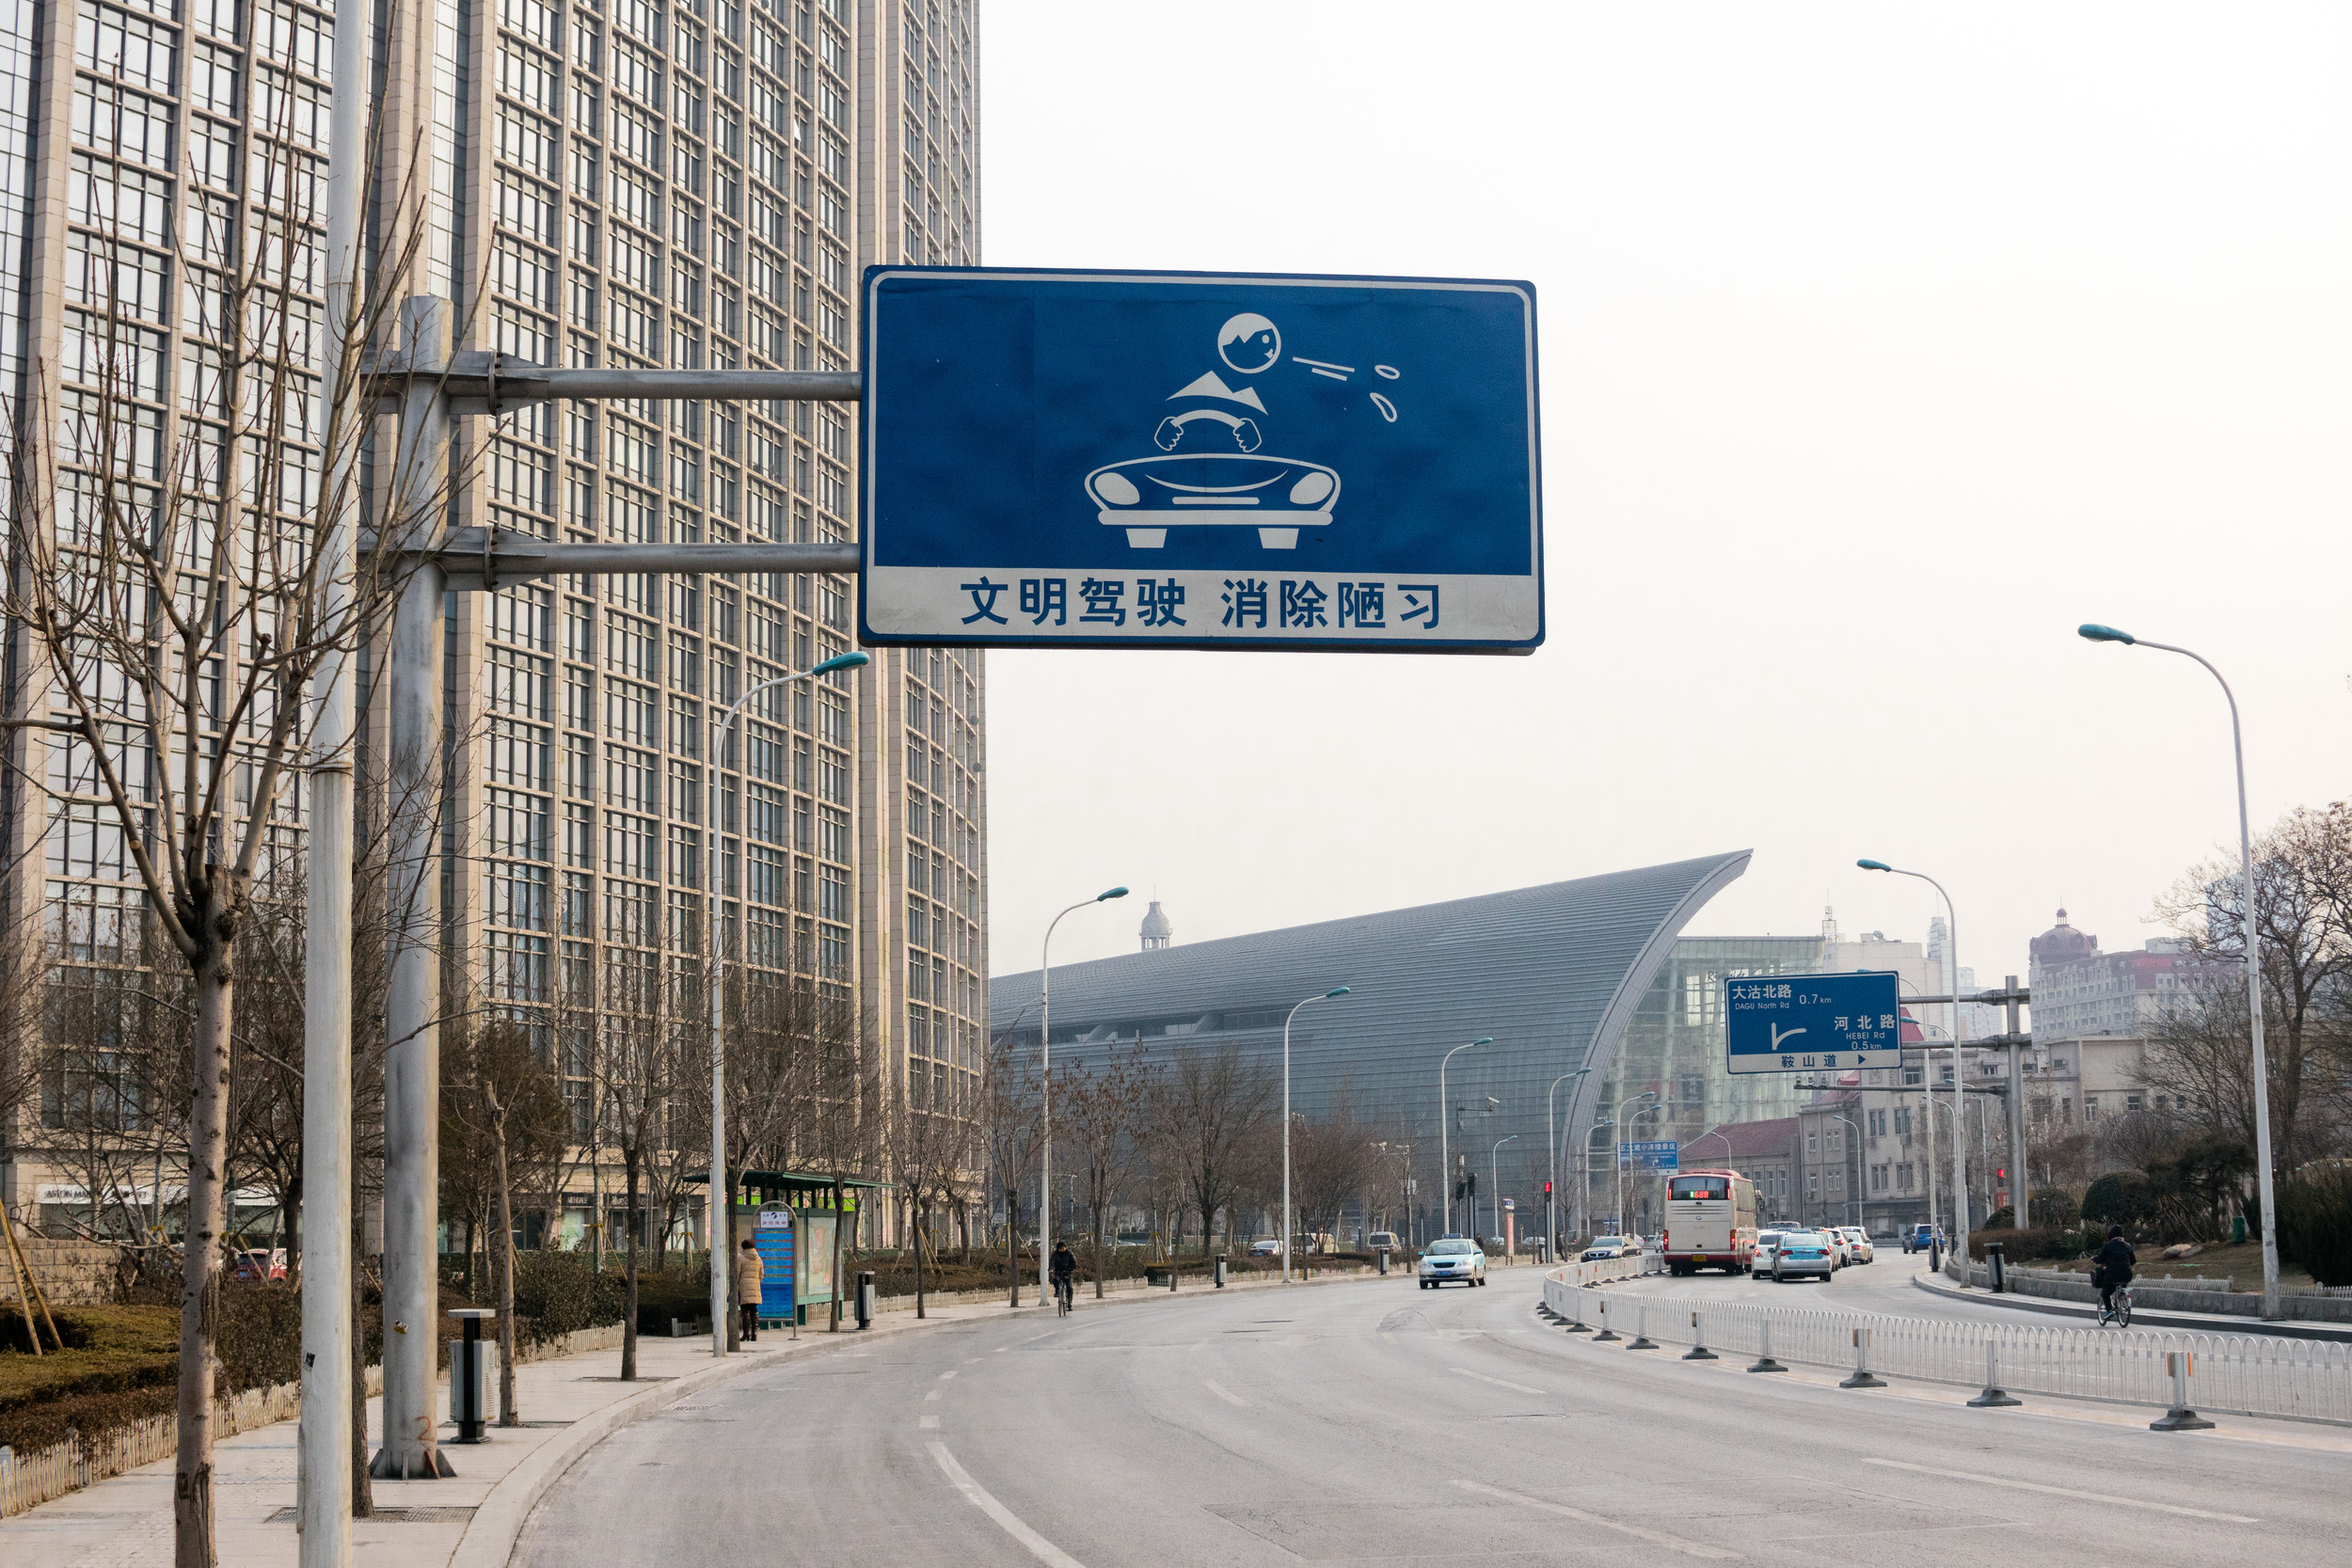 A lot of people spit in China. The sign says be curtious to other drivers. So don't spit while driving.